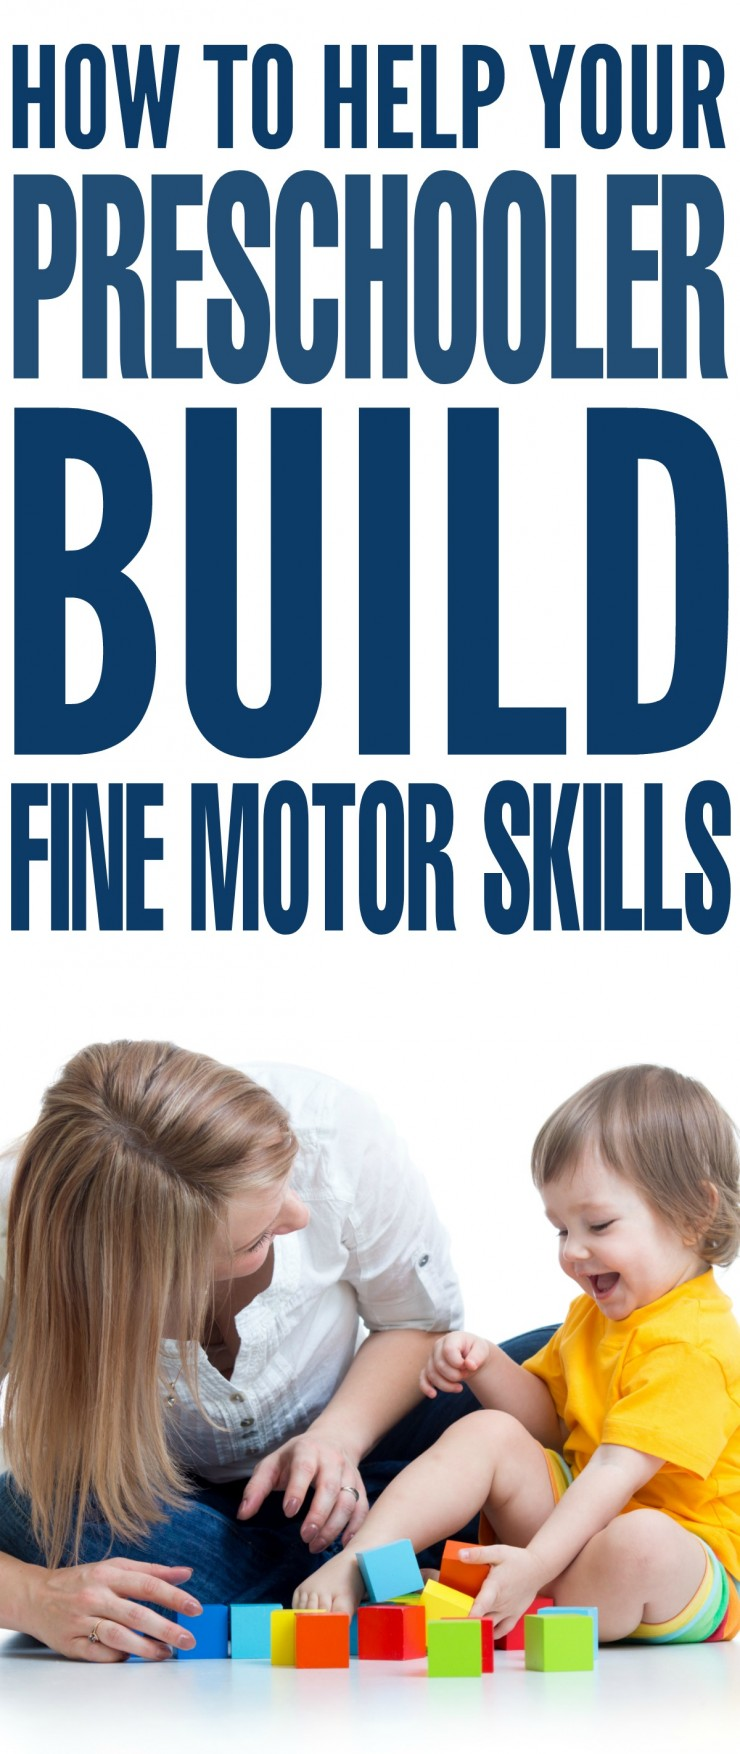 How to Help your Preschooler Build Fine Motor Skills